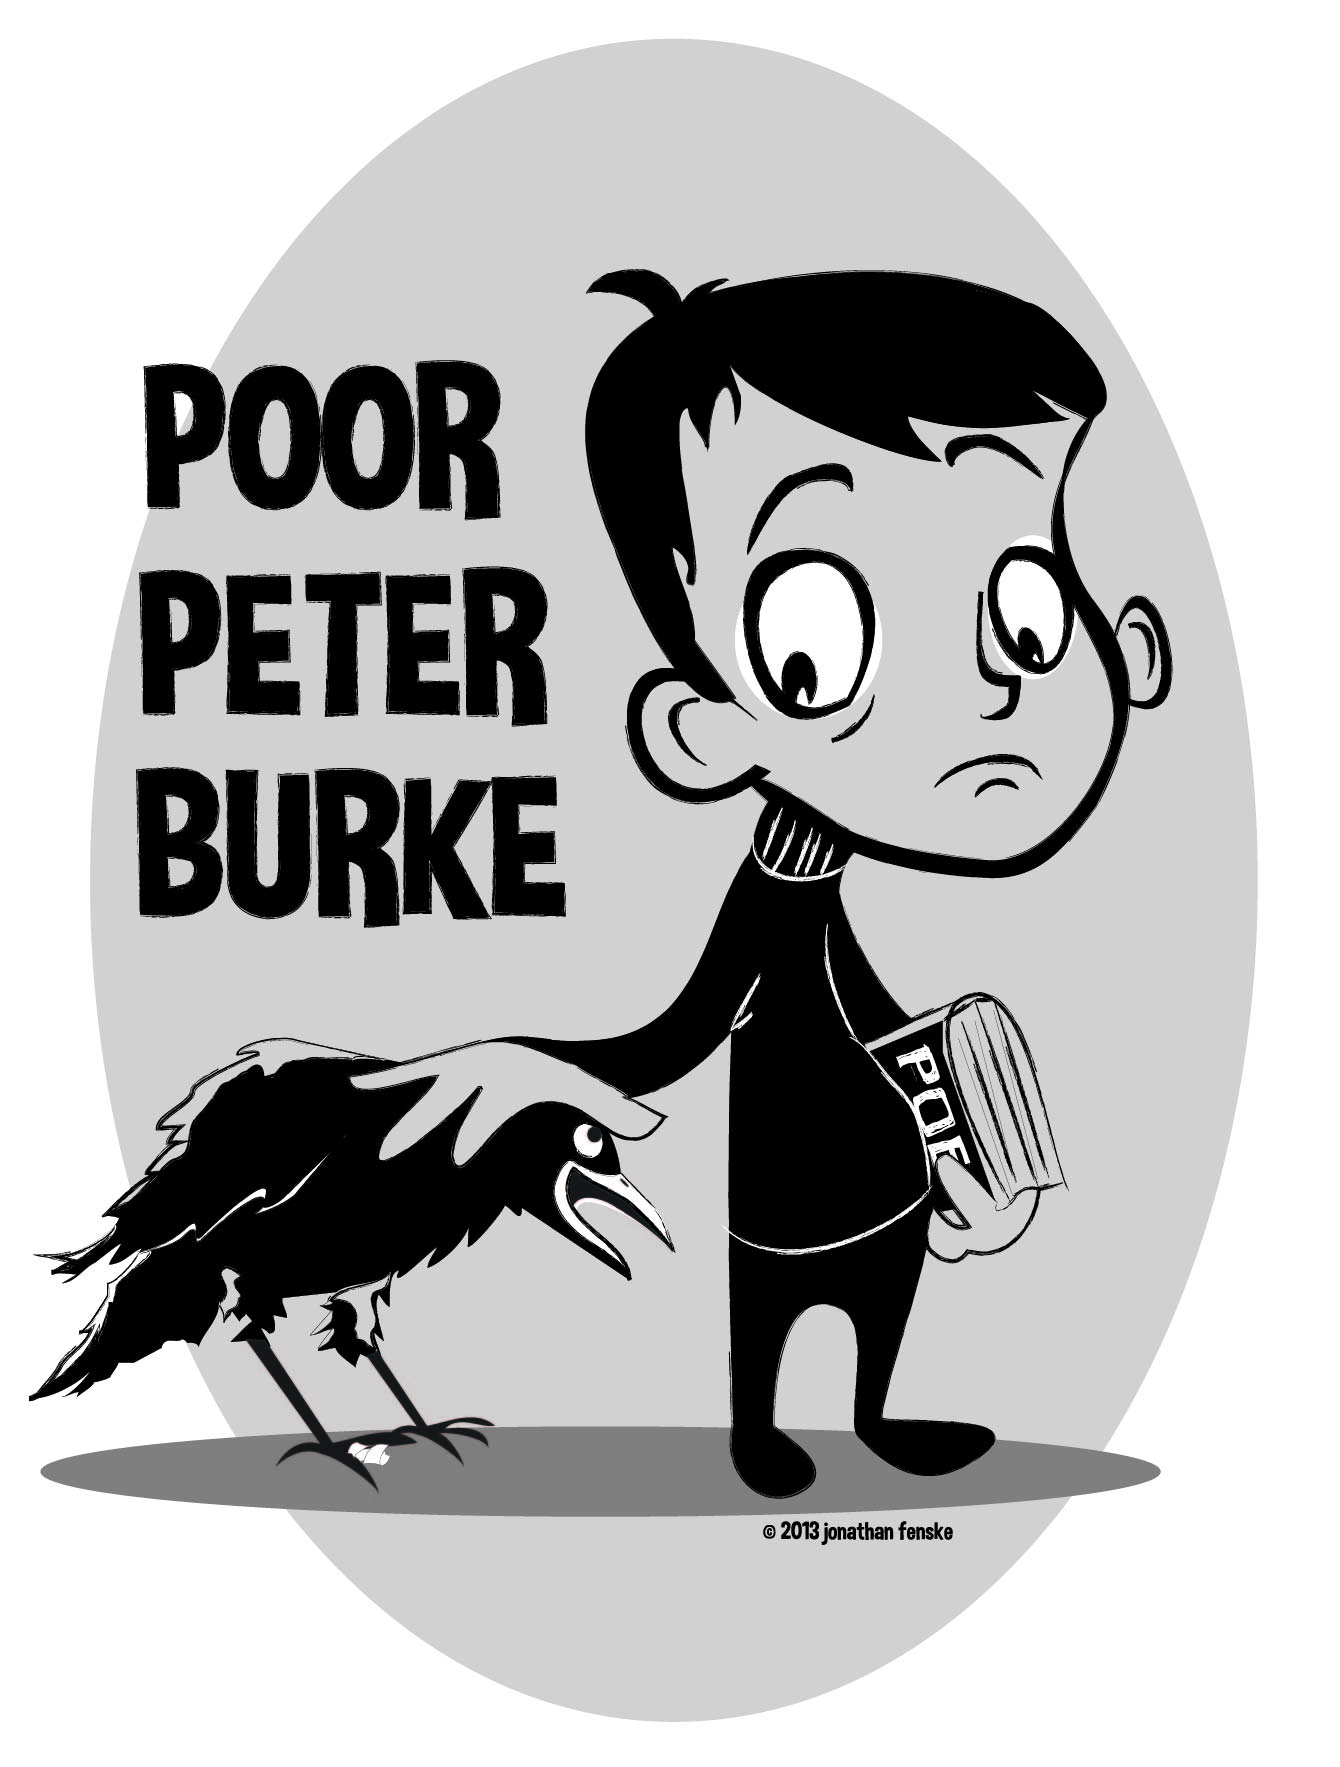 A picture of young Peter Burke and his pet raven by Colorado illustrator Jonathan Fenske